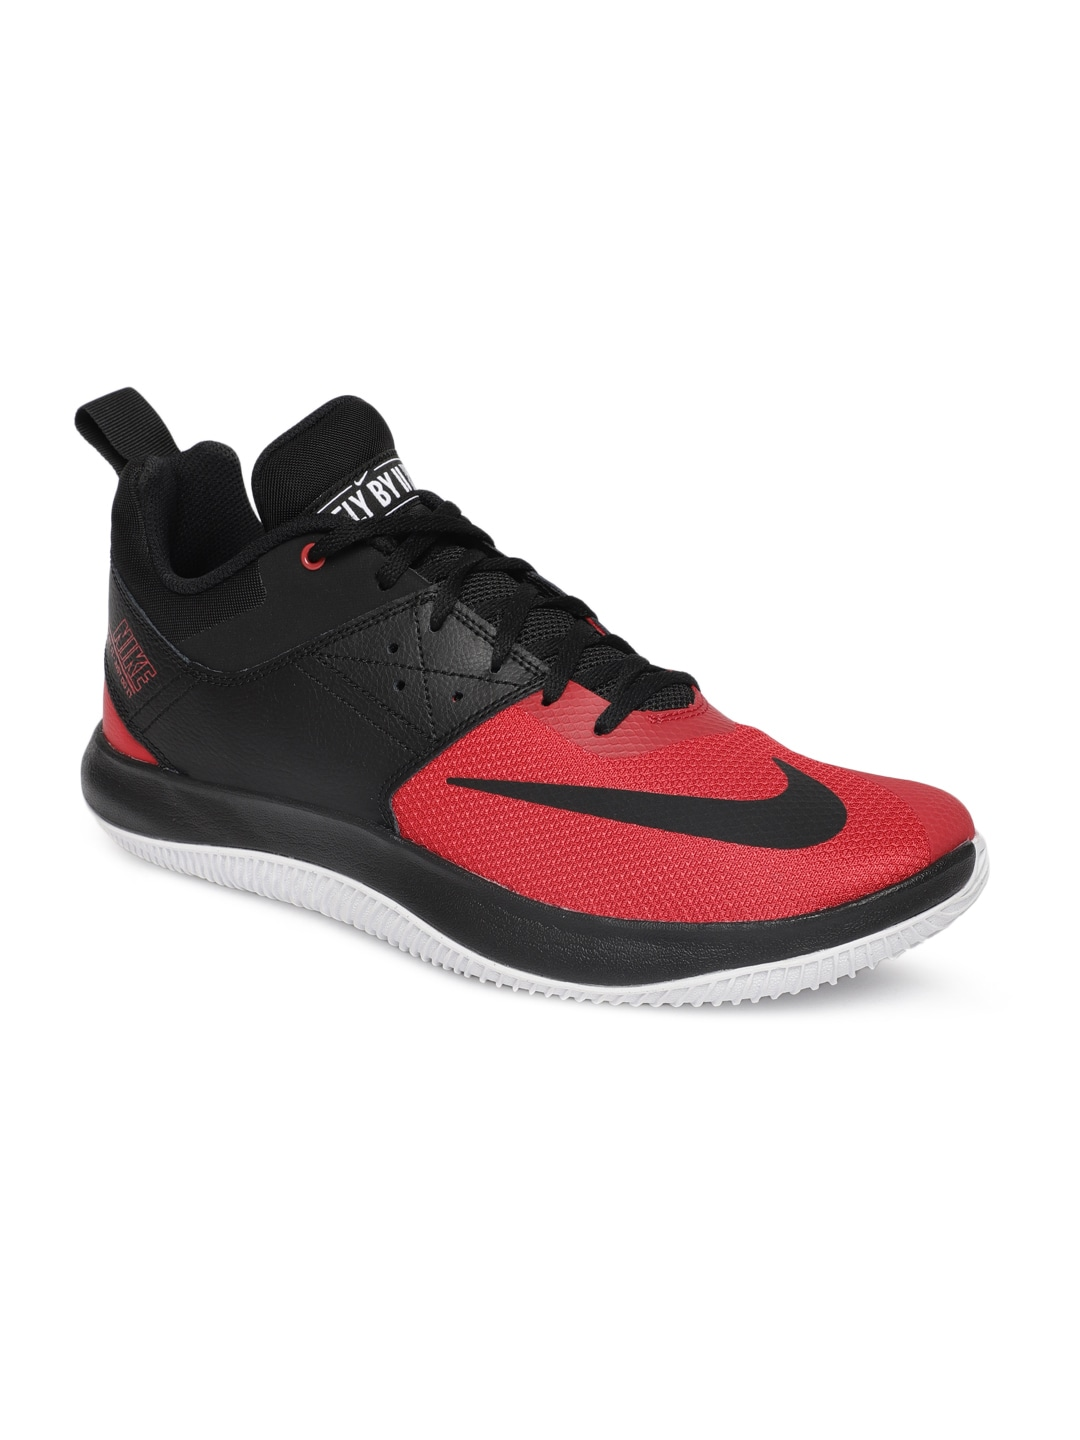 f468d3b9449c Nike Basketball Shoes